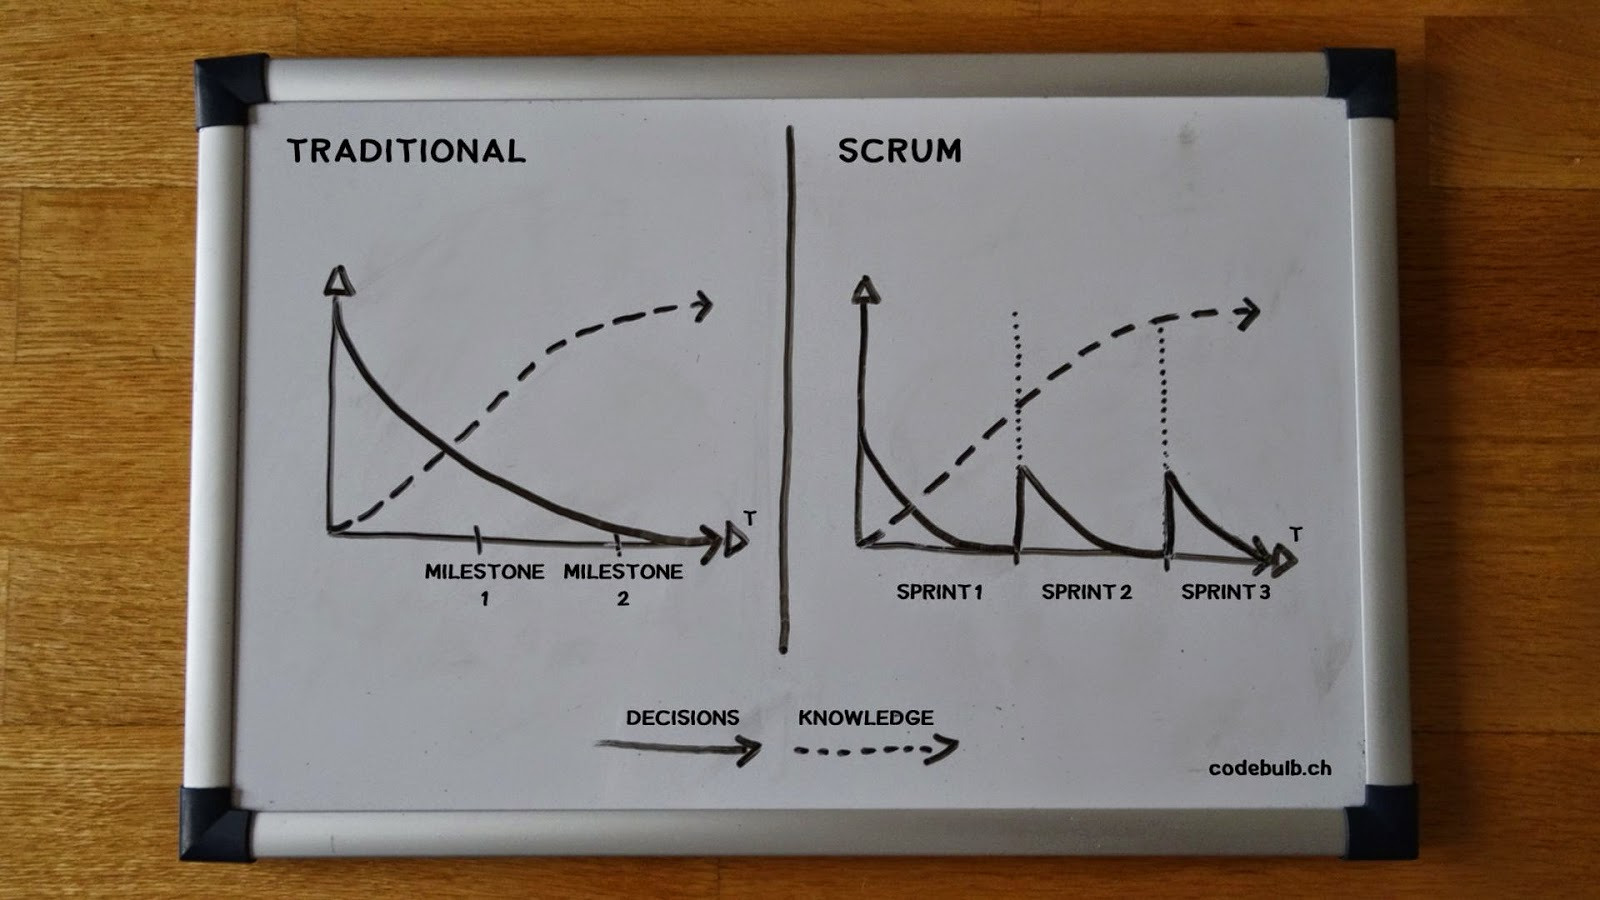 Tranditional vs. Scrum approach to knowledge building in a whiteboard sketch